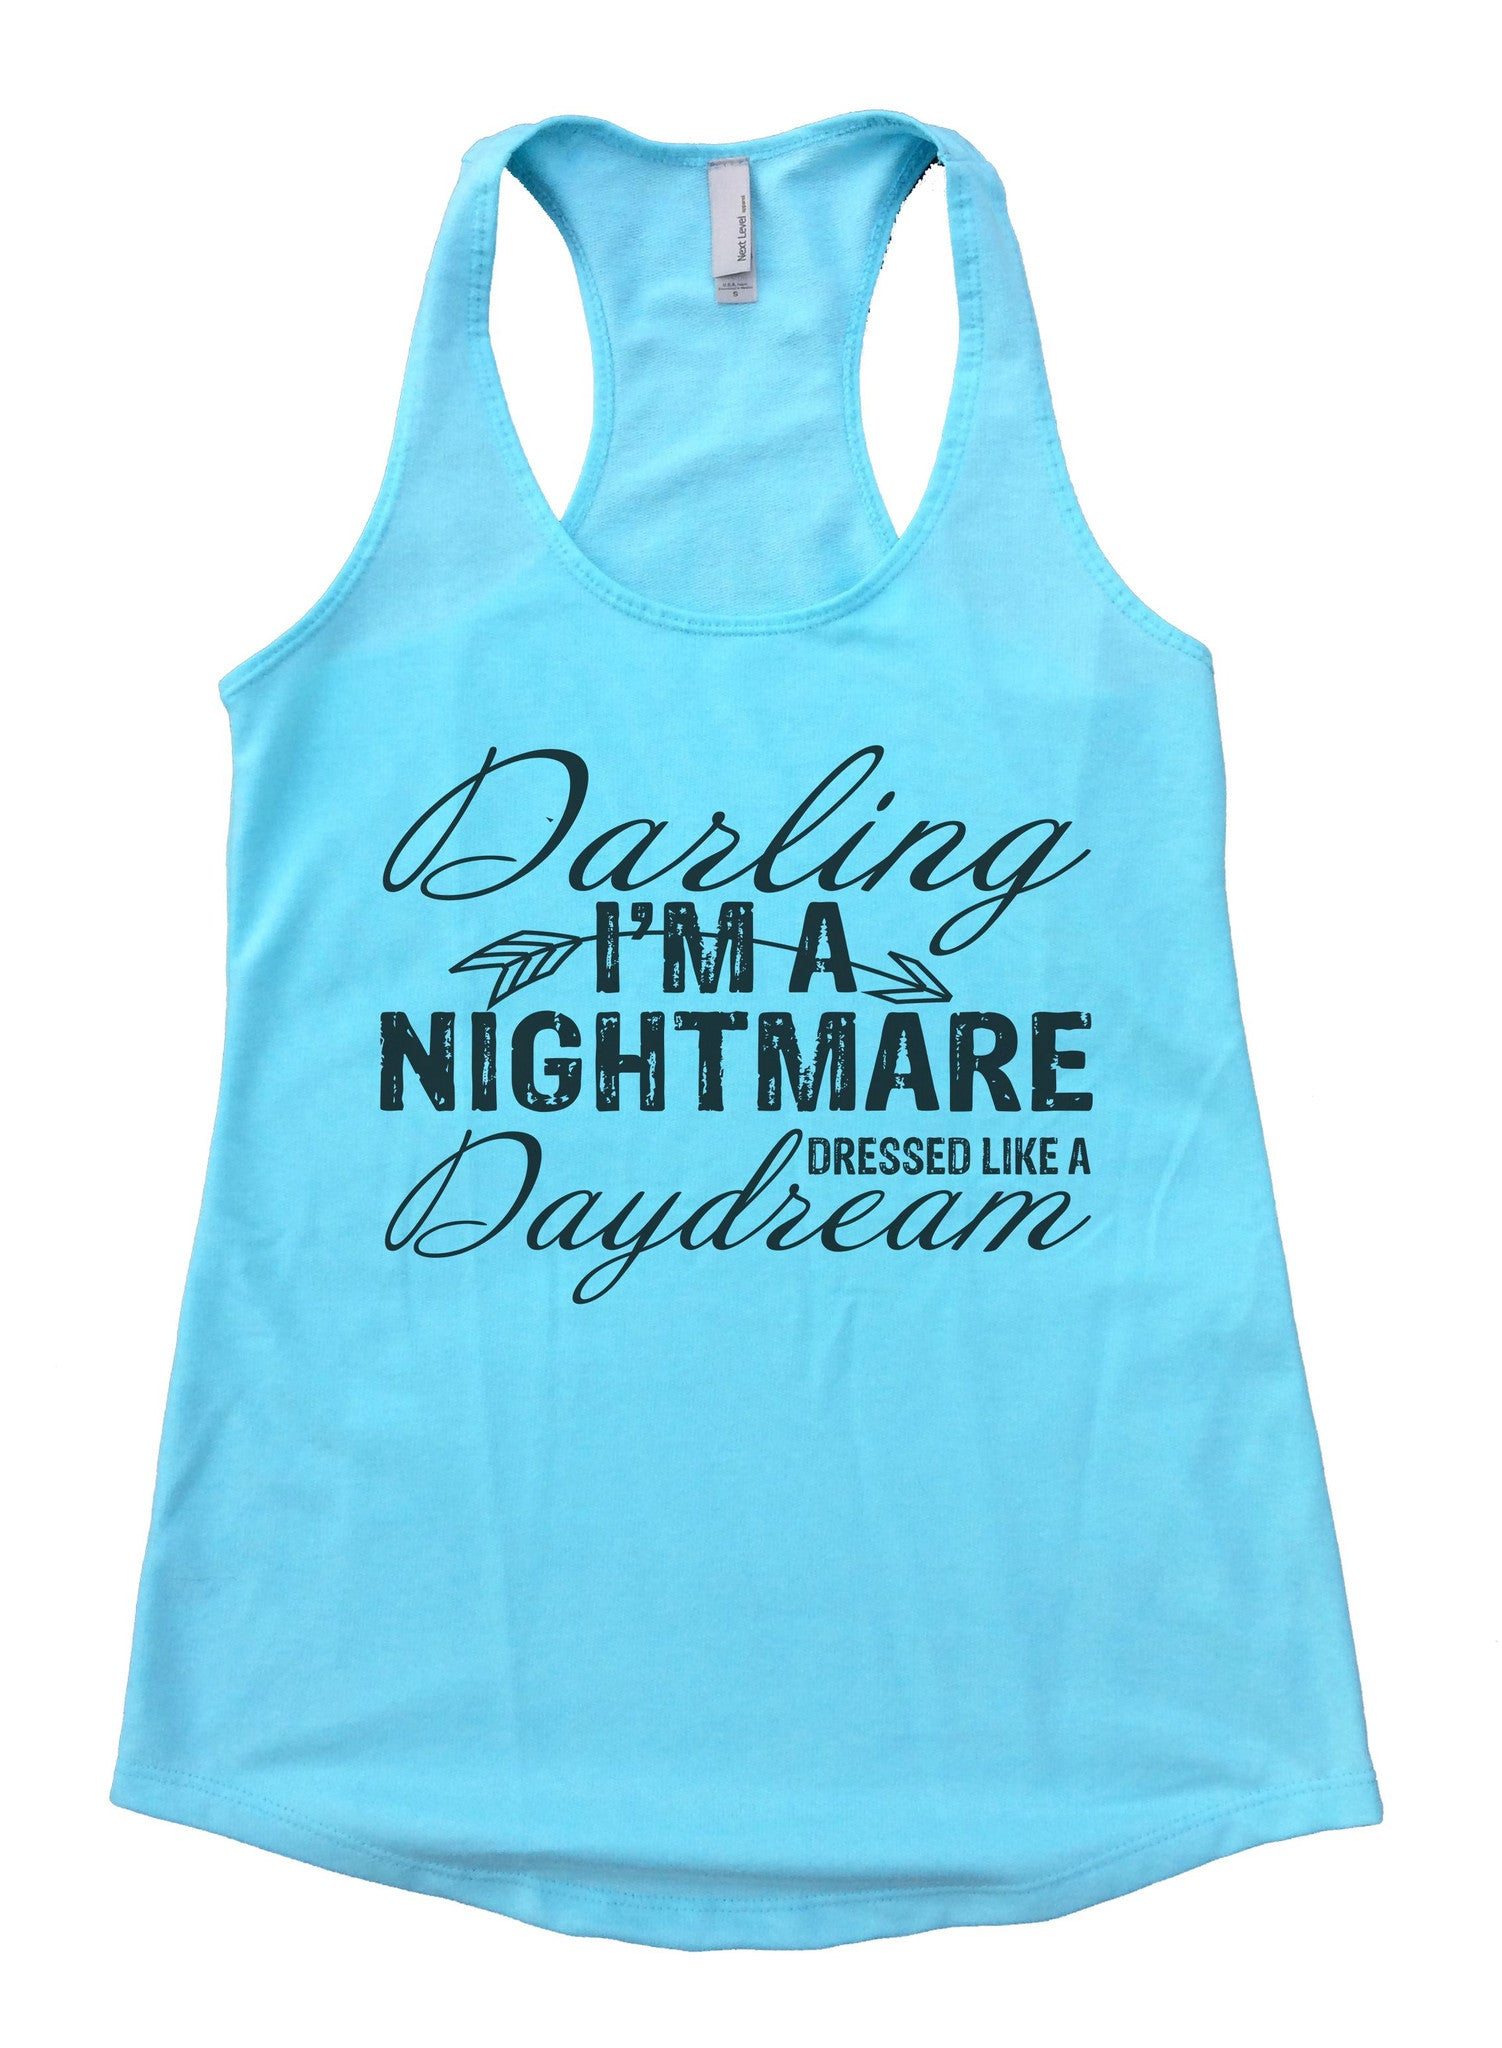 Darling I'm A Nightmare Dressed Like A Daydream Womens Workout Tank Top F930 - Funny Shirts Tank Tops Burnouts and Triblends  - 1